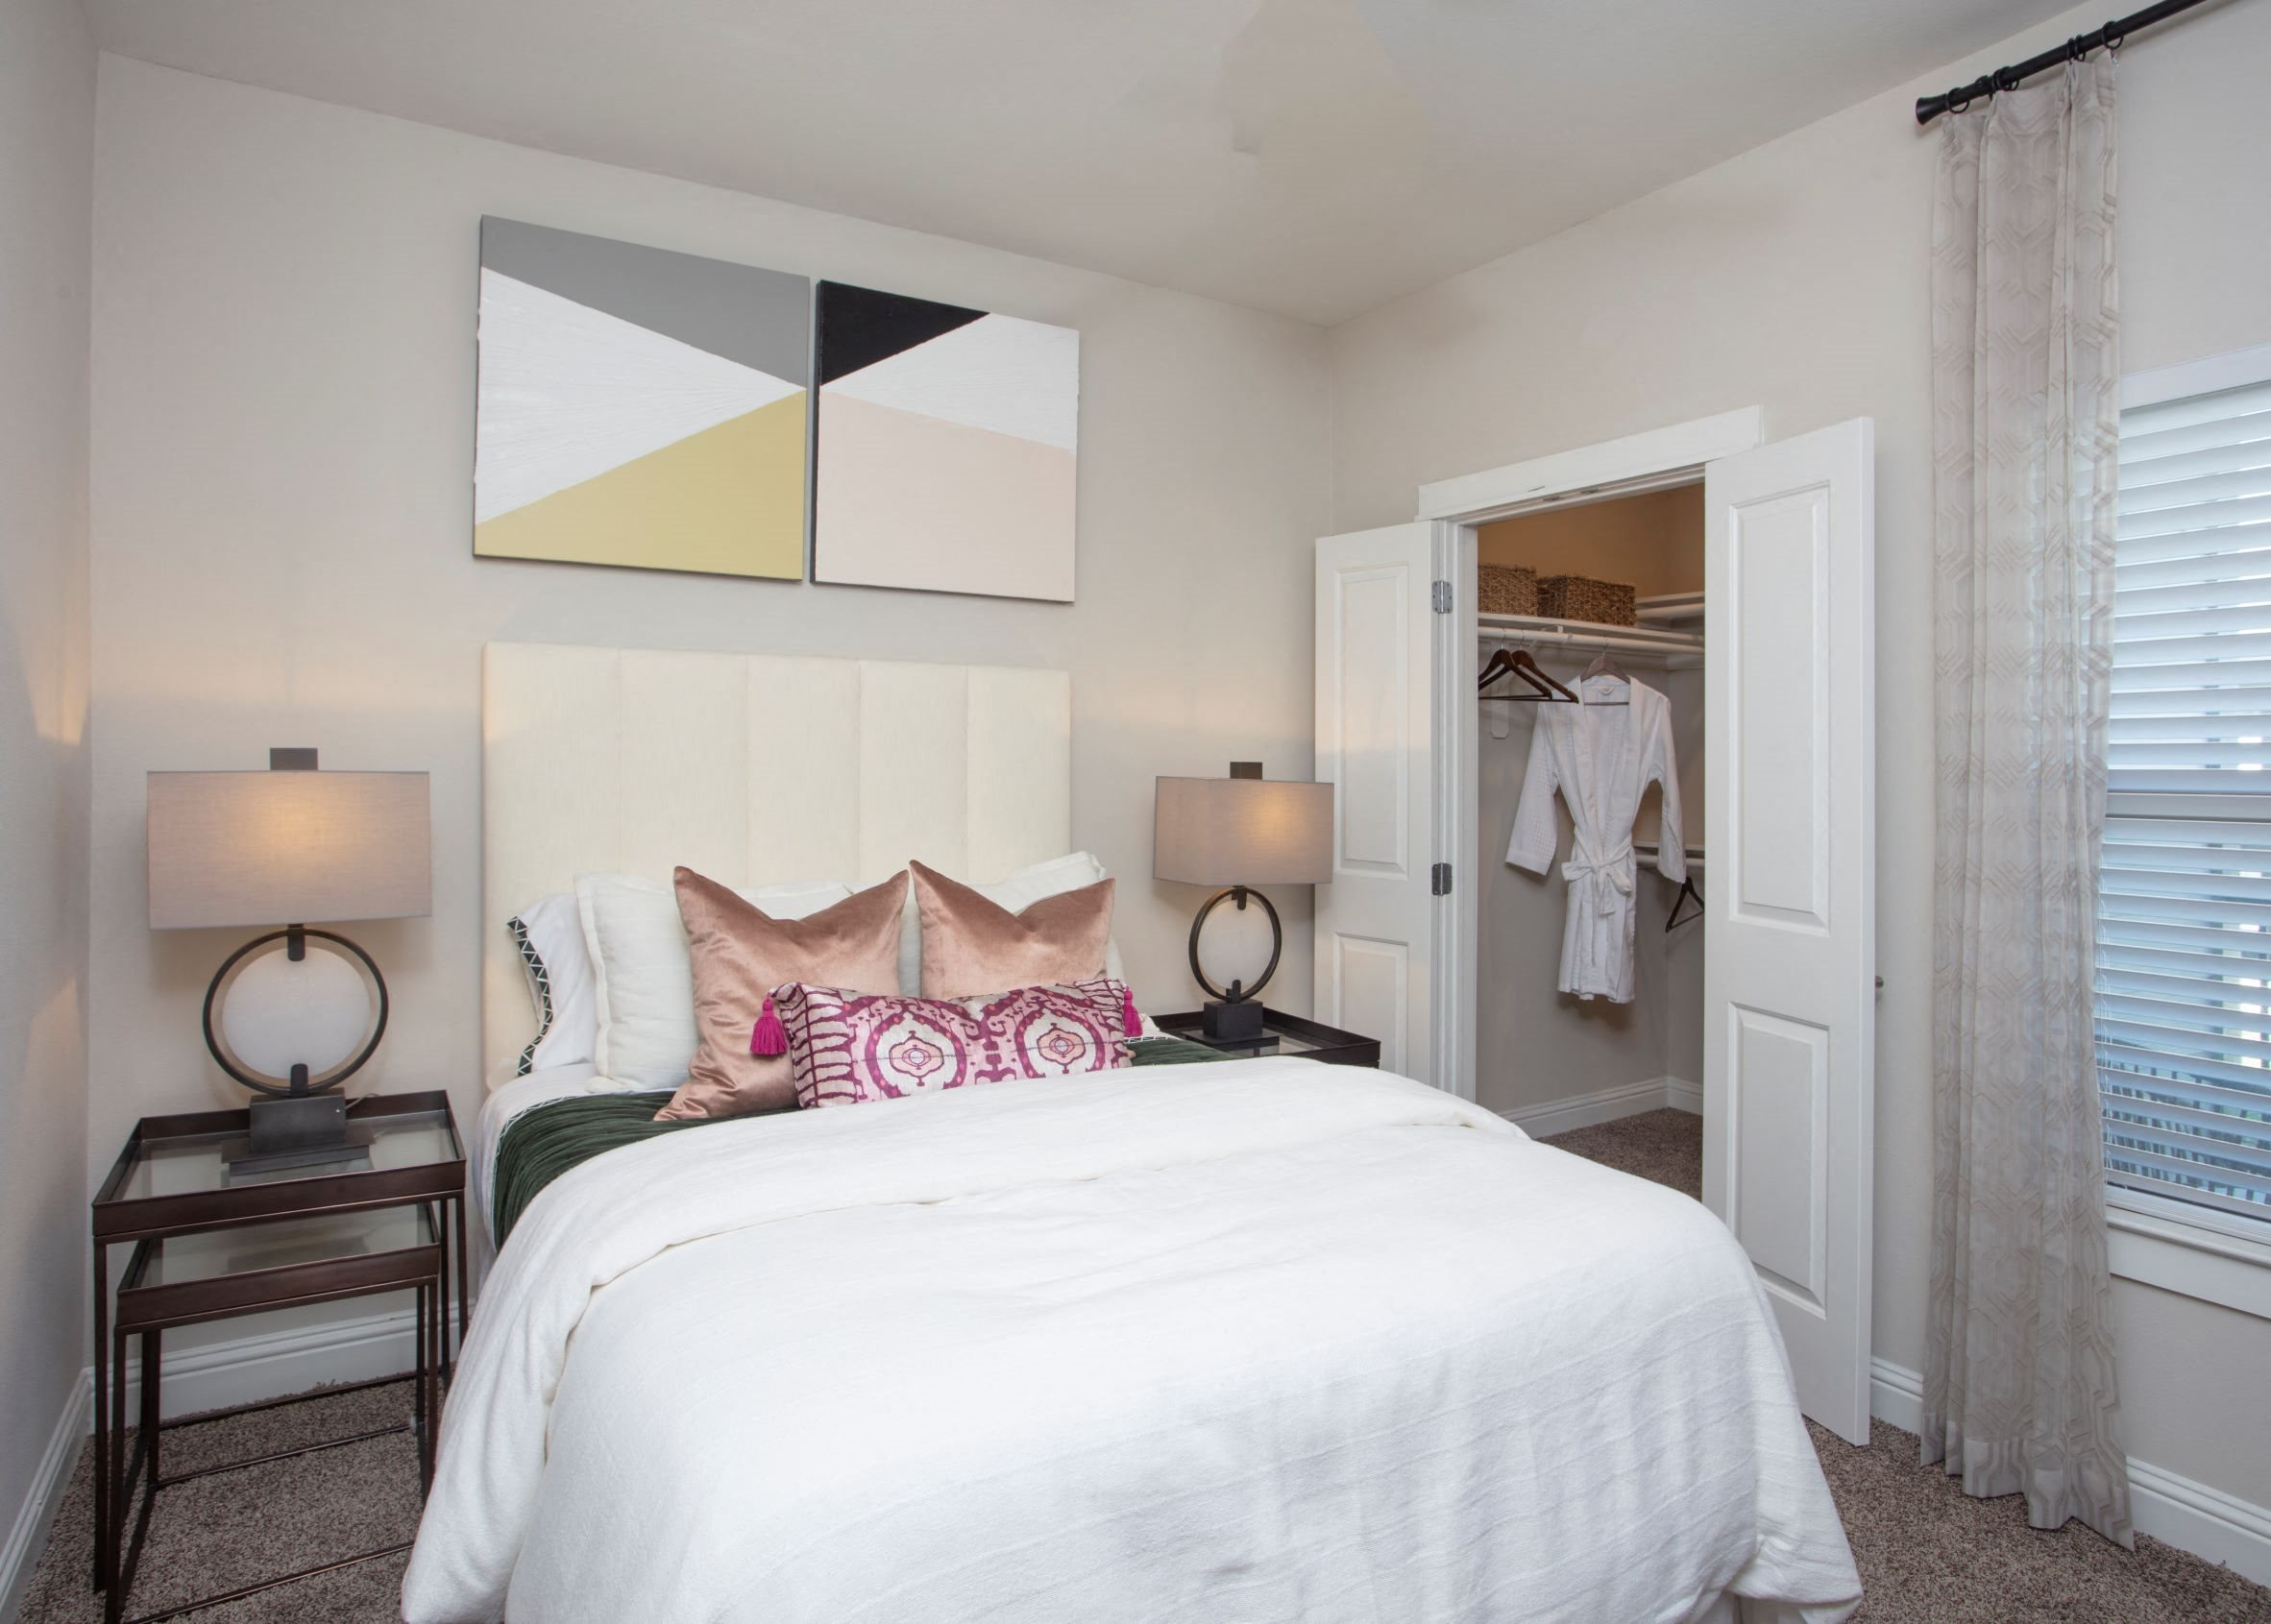 Bedroom at Legacy at 2020